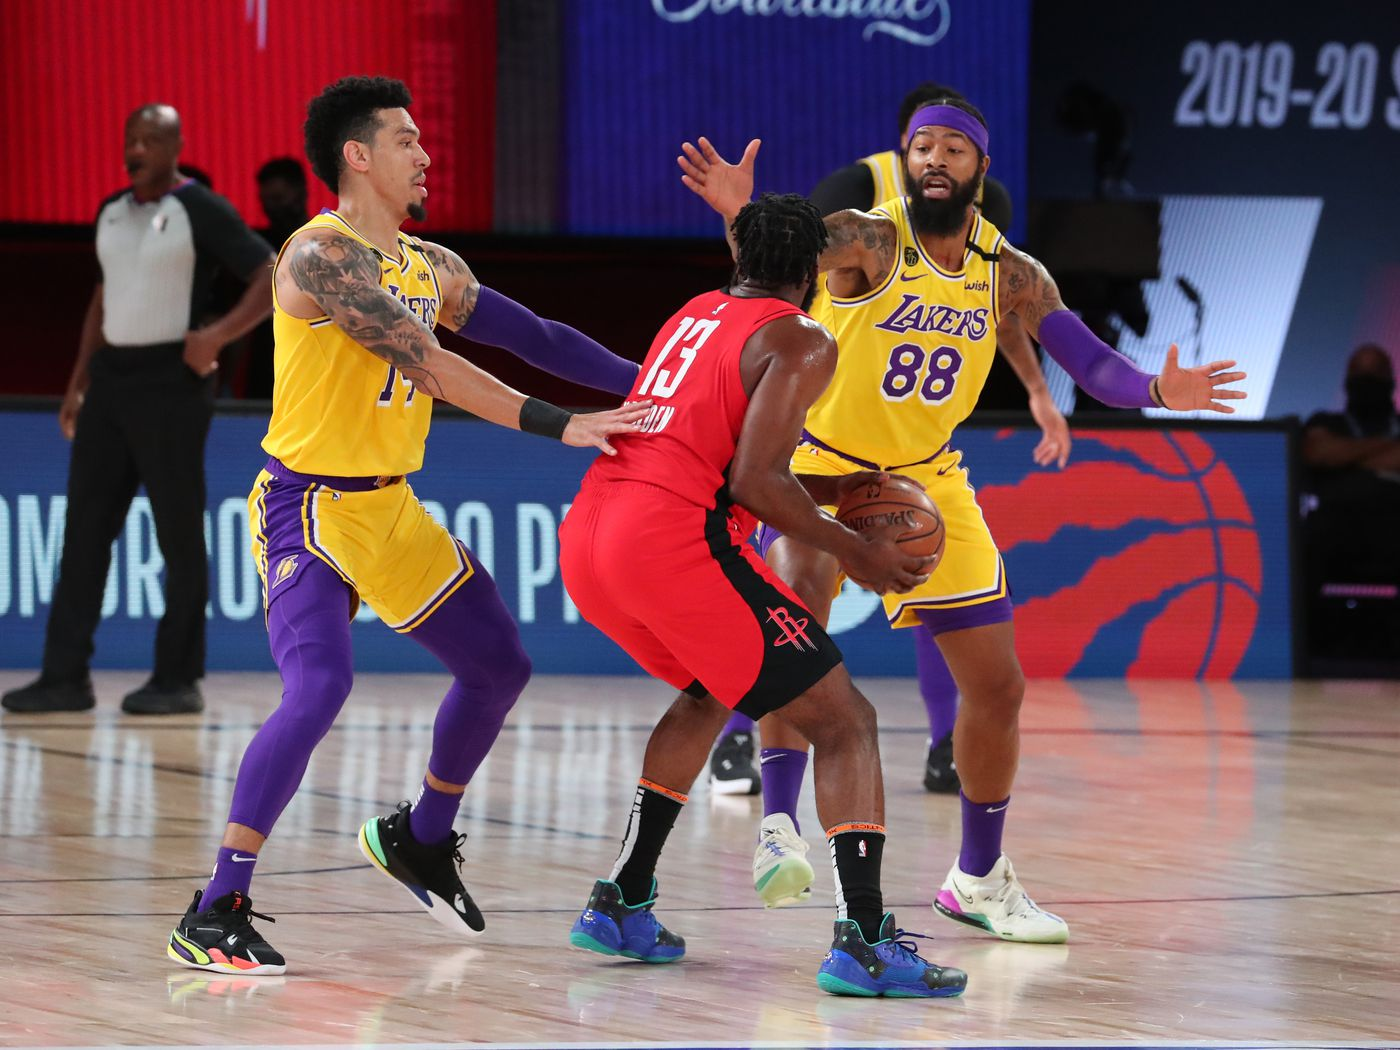 Nba Playoffs Lakers Vs Rockets Preview Starting Time And Tv Schedule Silver Screen And Roll